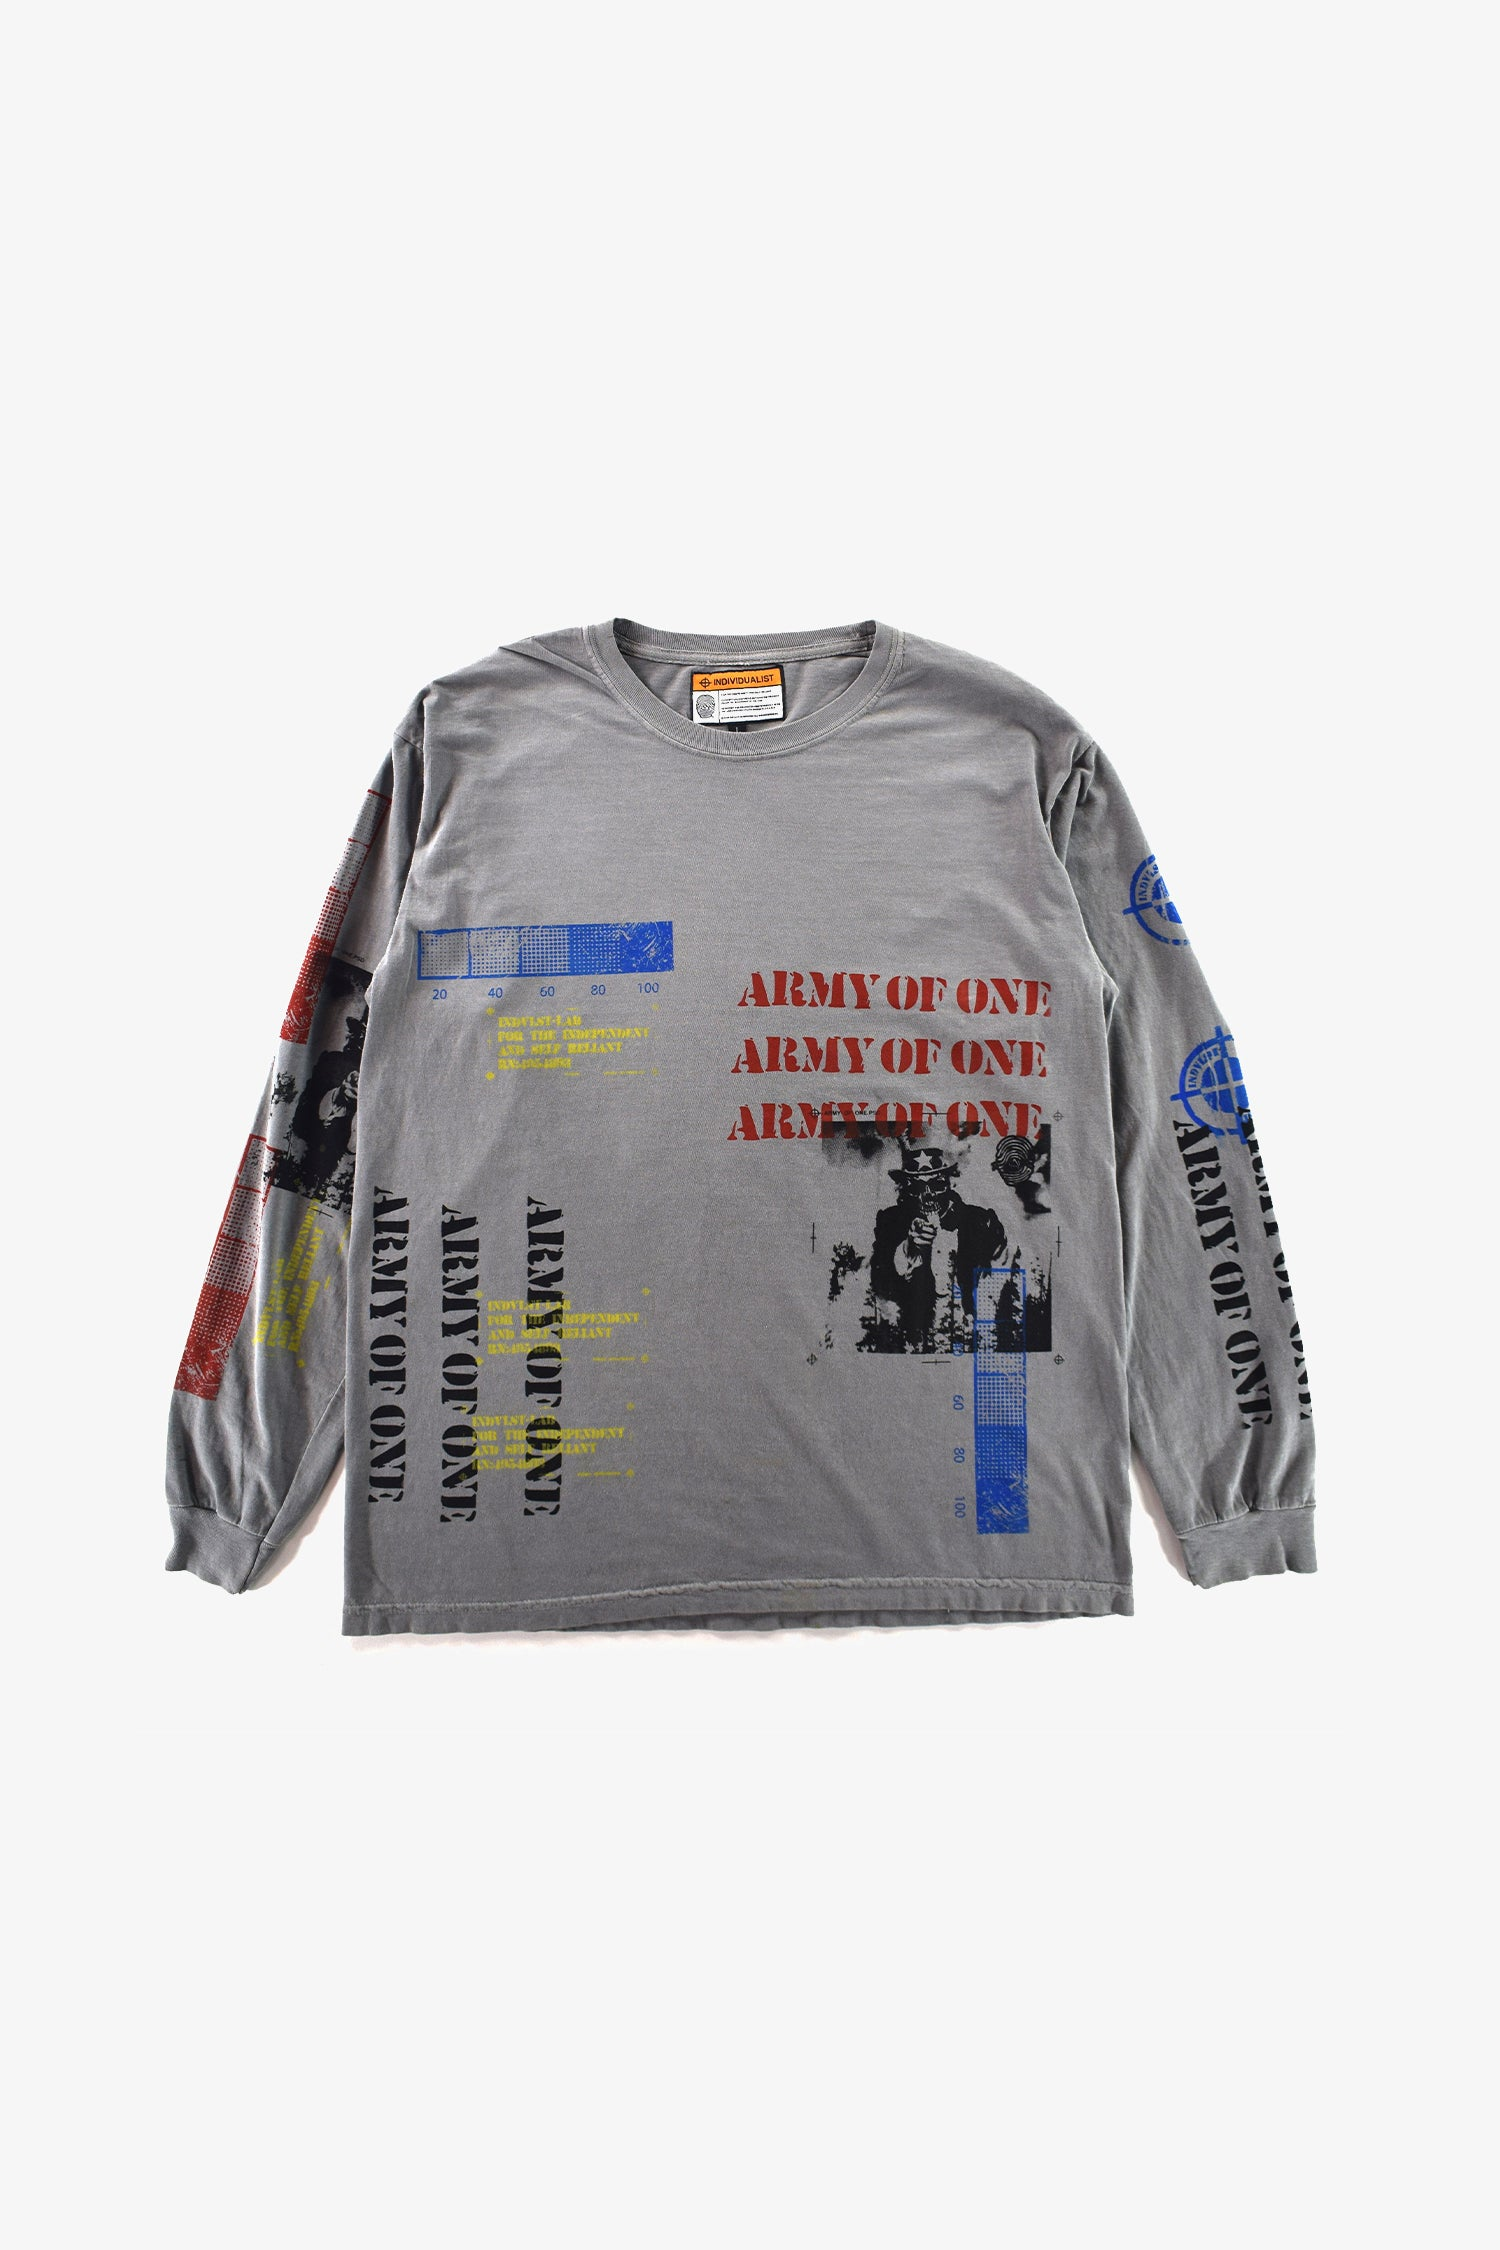 Selectshop FRAME - INDVLST Army of One Print Kit Long Sleeve T-Shirts Dubai